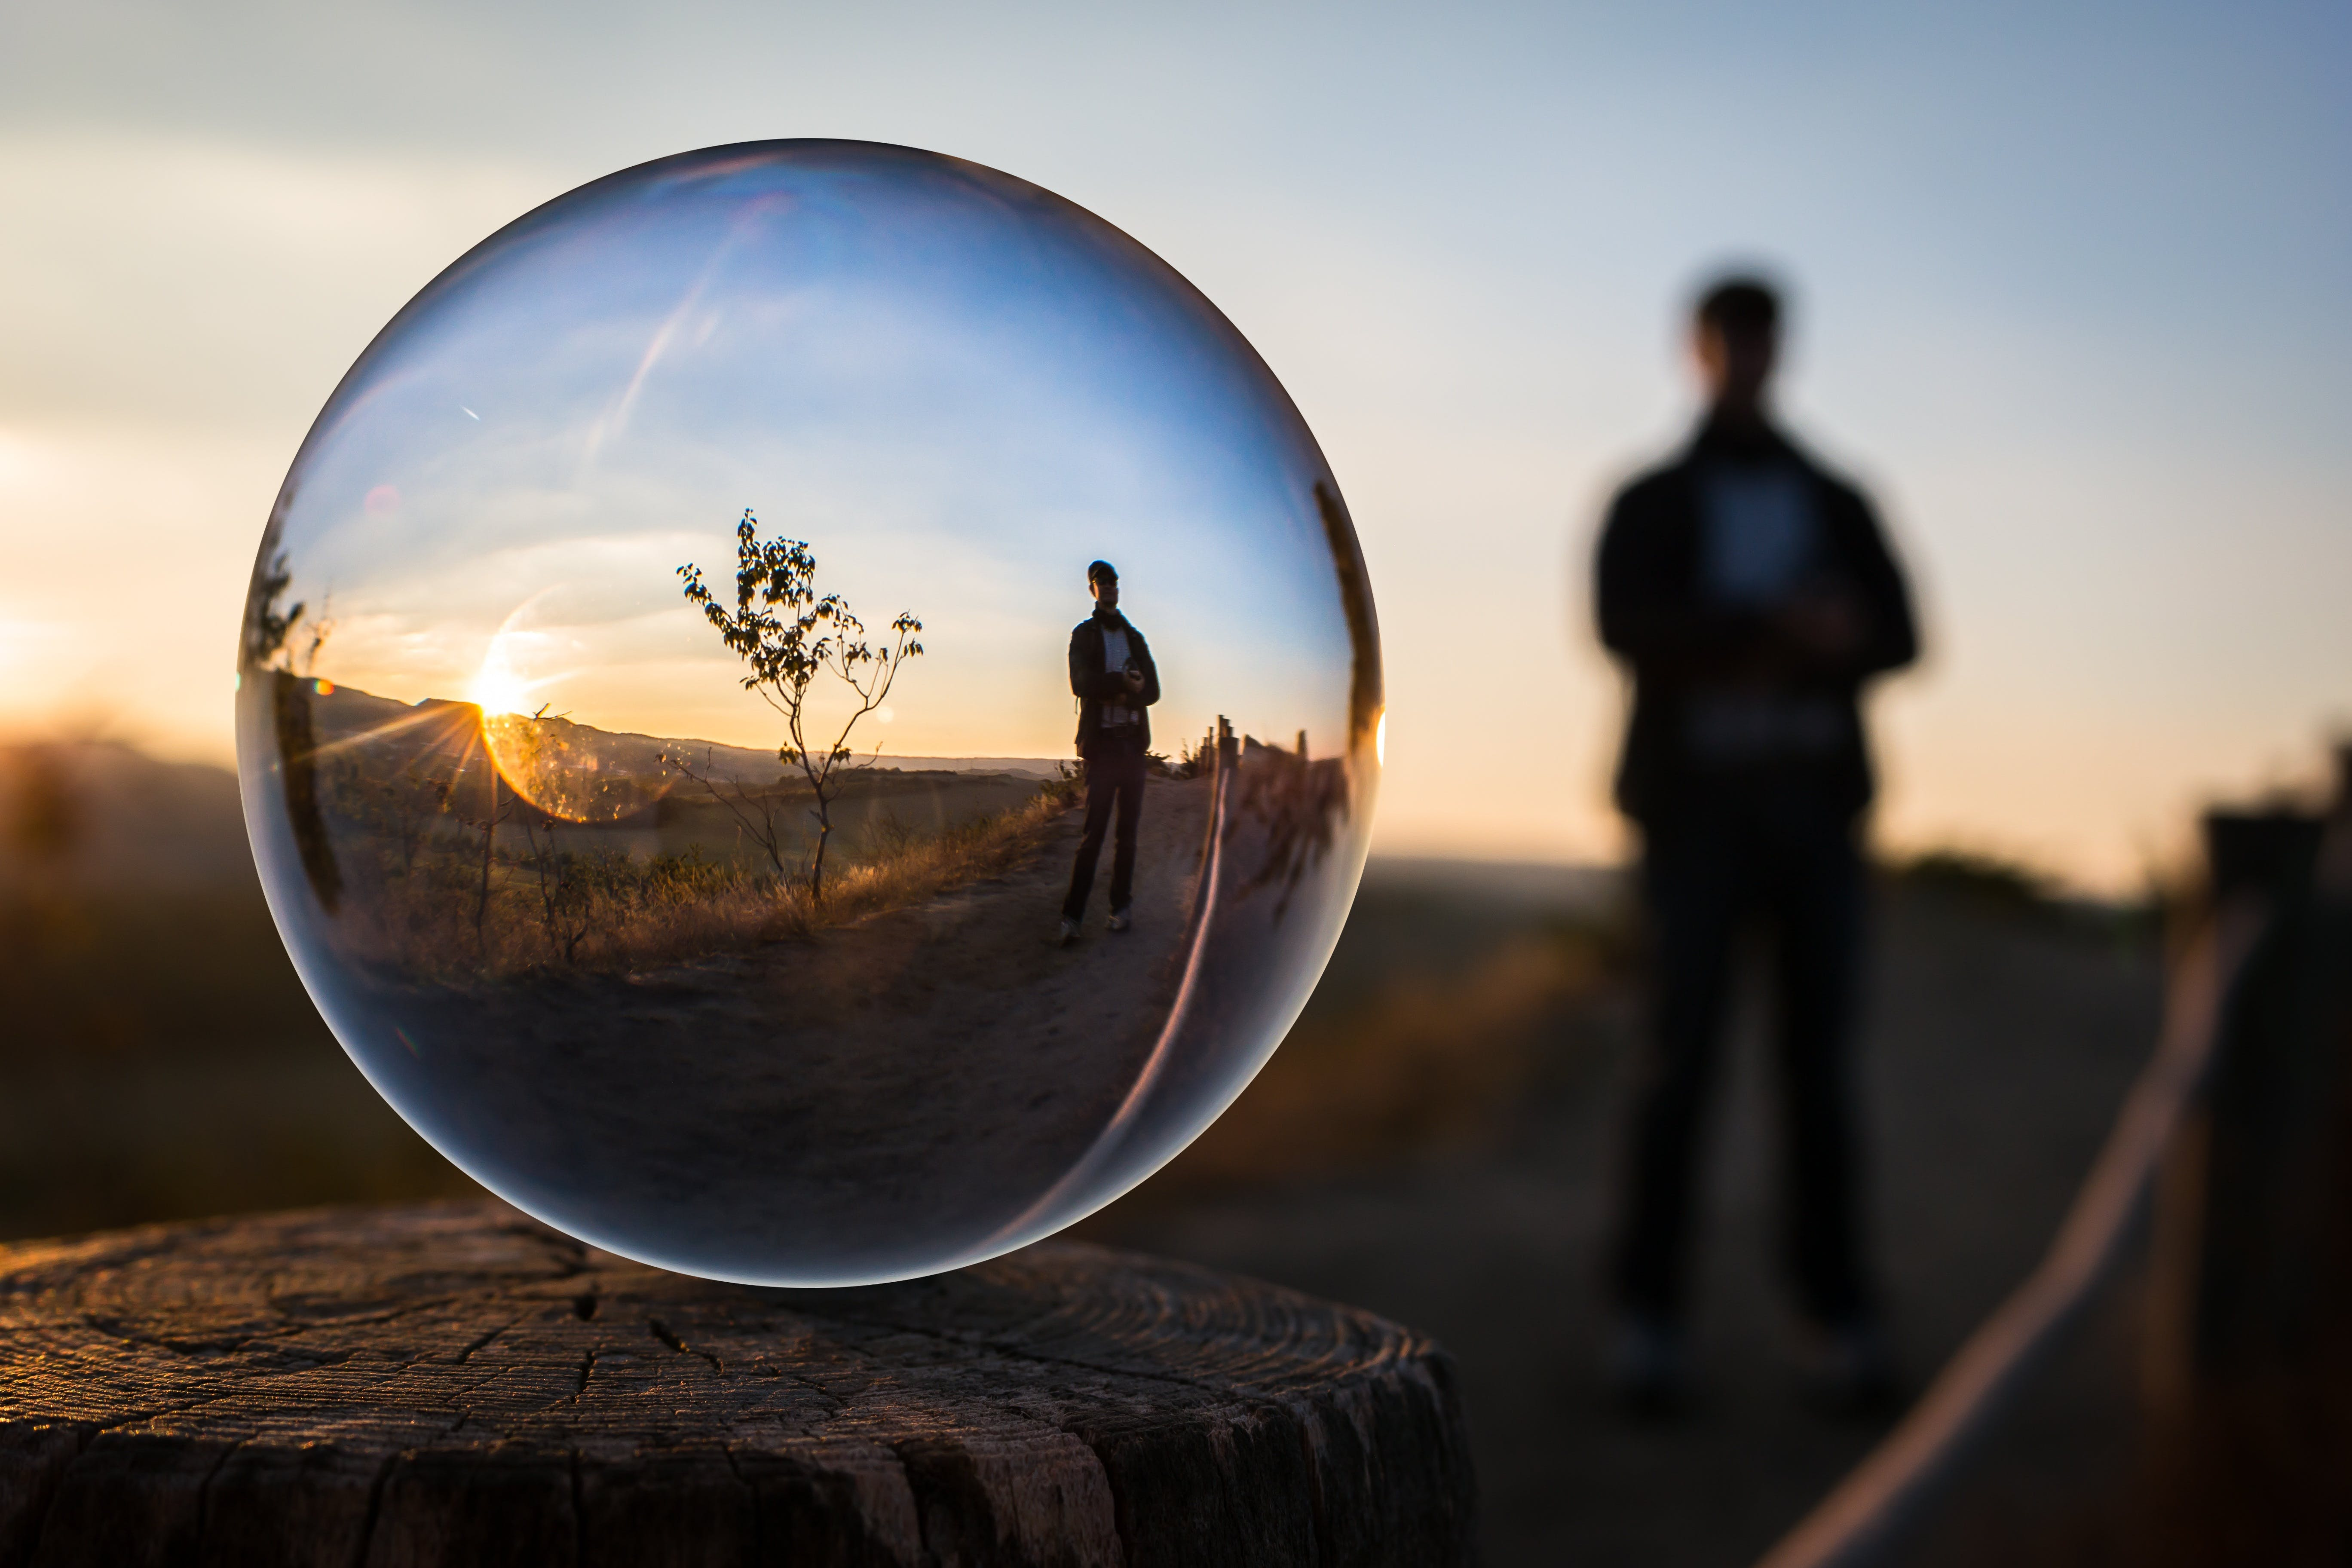 Forced Perspective Selective Focus Photography of Man Inside the Ball